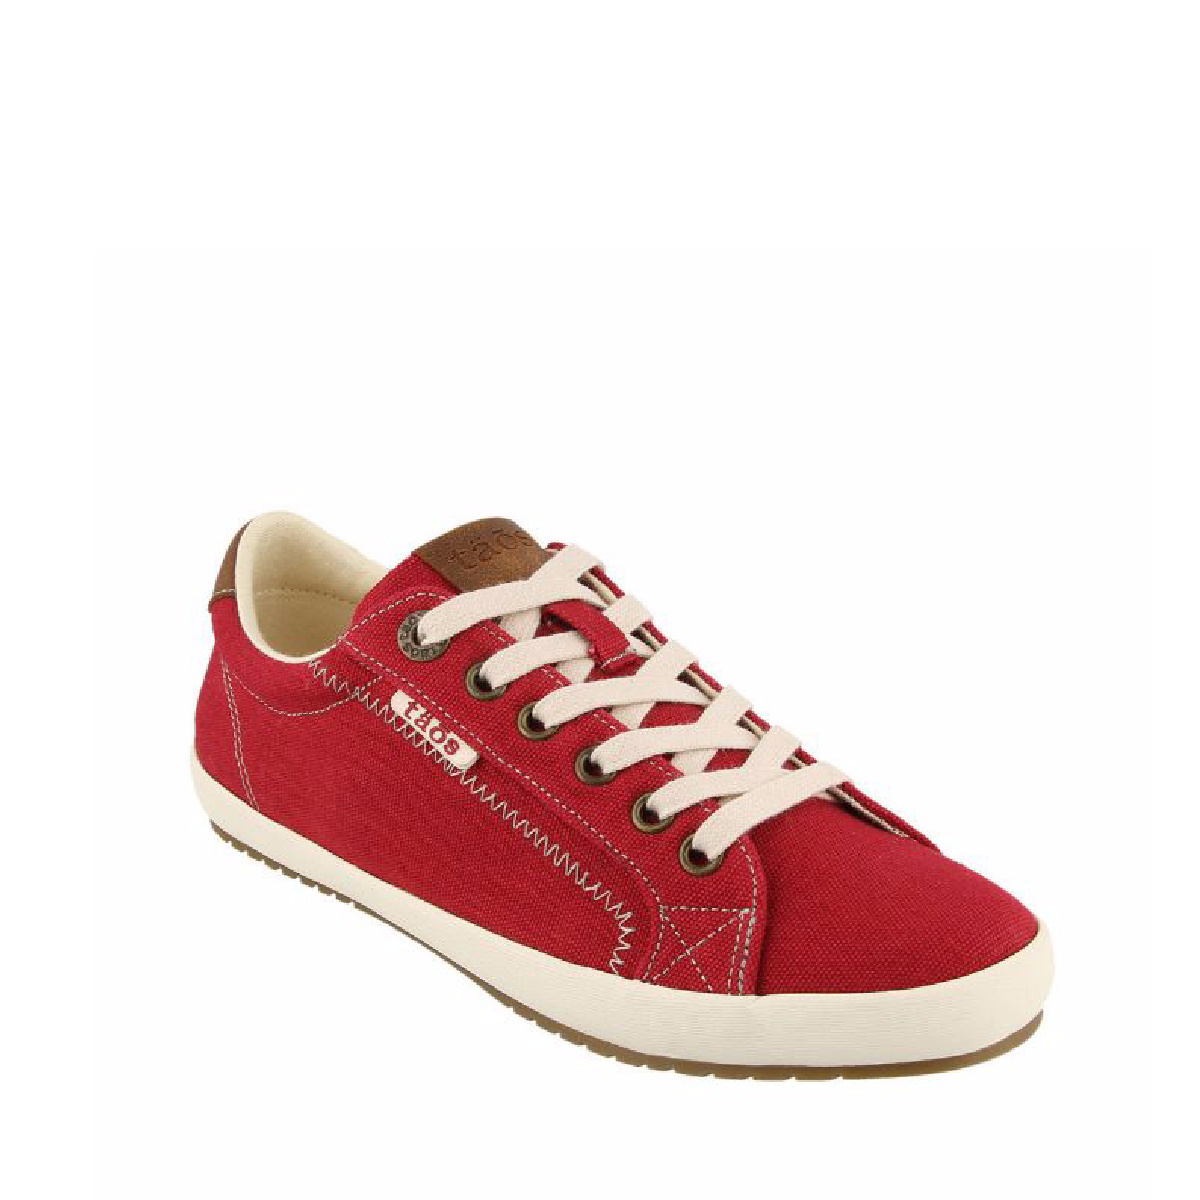 Taos Footwear Taos Star Burst Sneaker Red